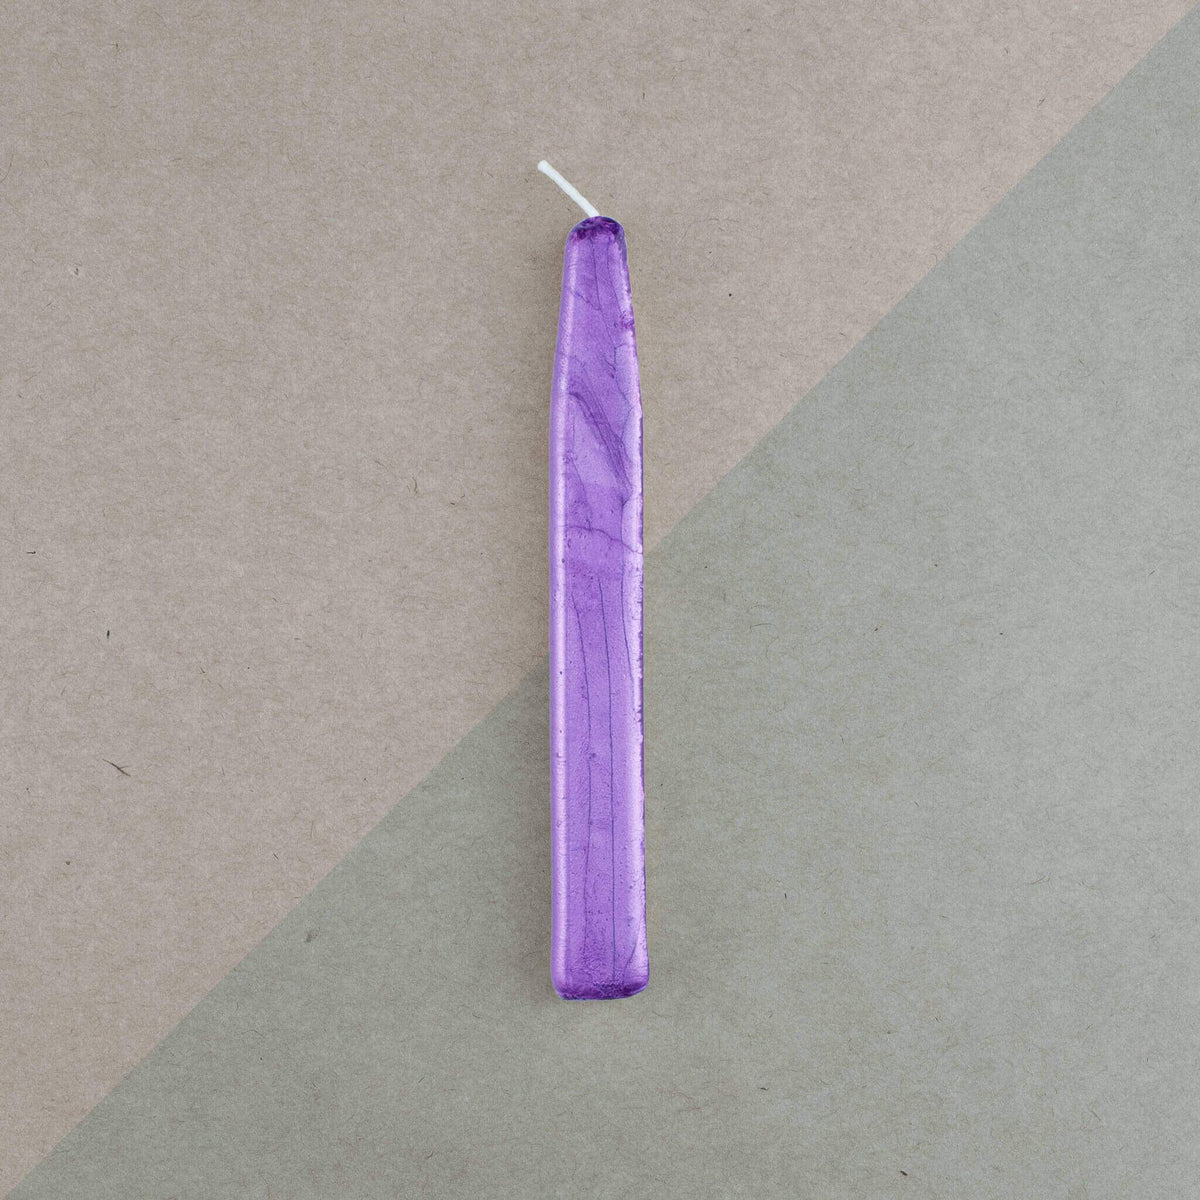 Kustom Haus Traditional Sealing Wax Stick with Wick - Violet Pearl